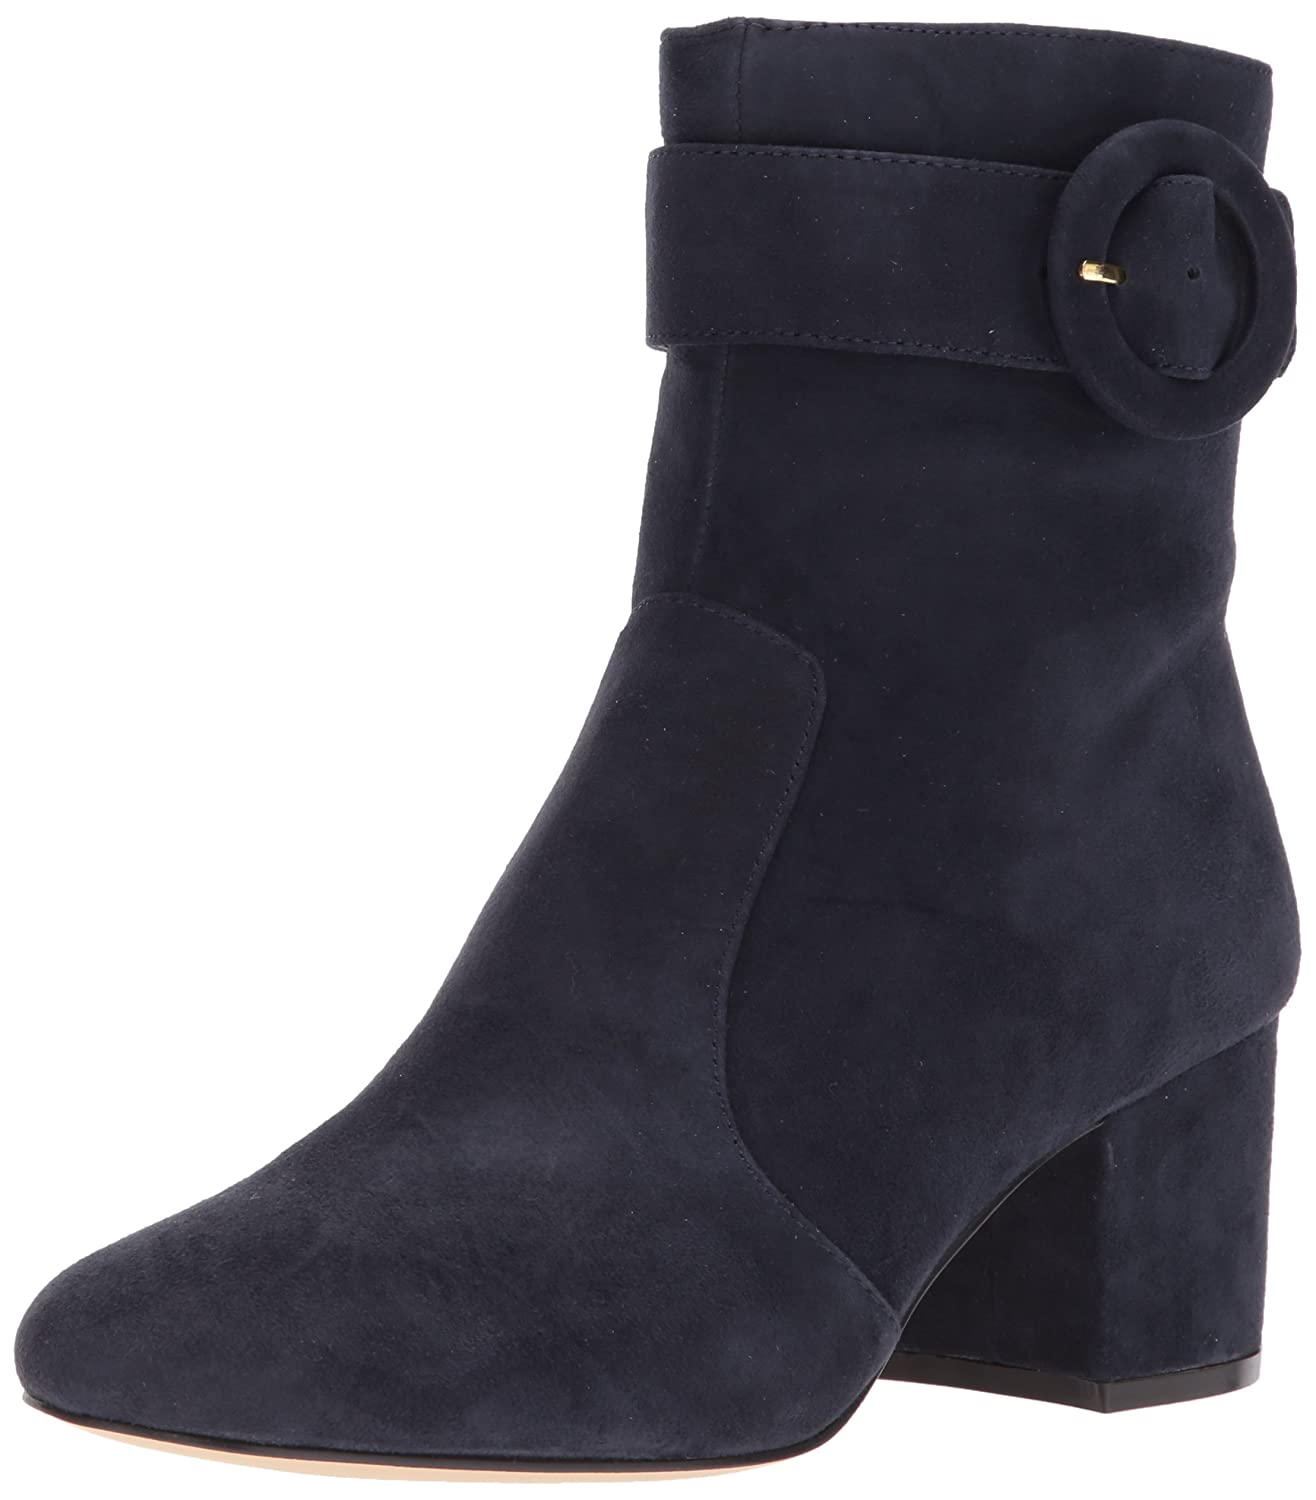 Nine West Women's Quilby Suede Ankle Boot B07143QKLF 8 B(M) US|Navy Suede